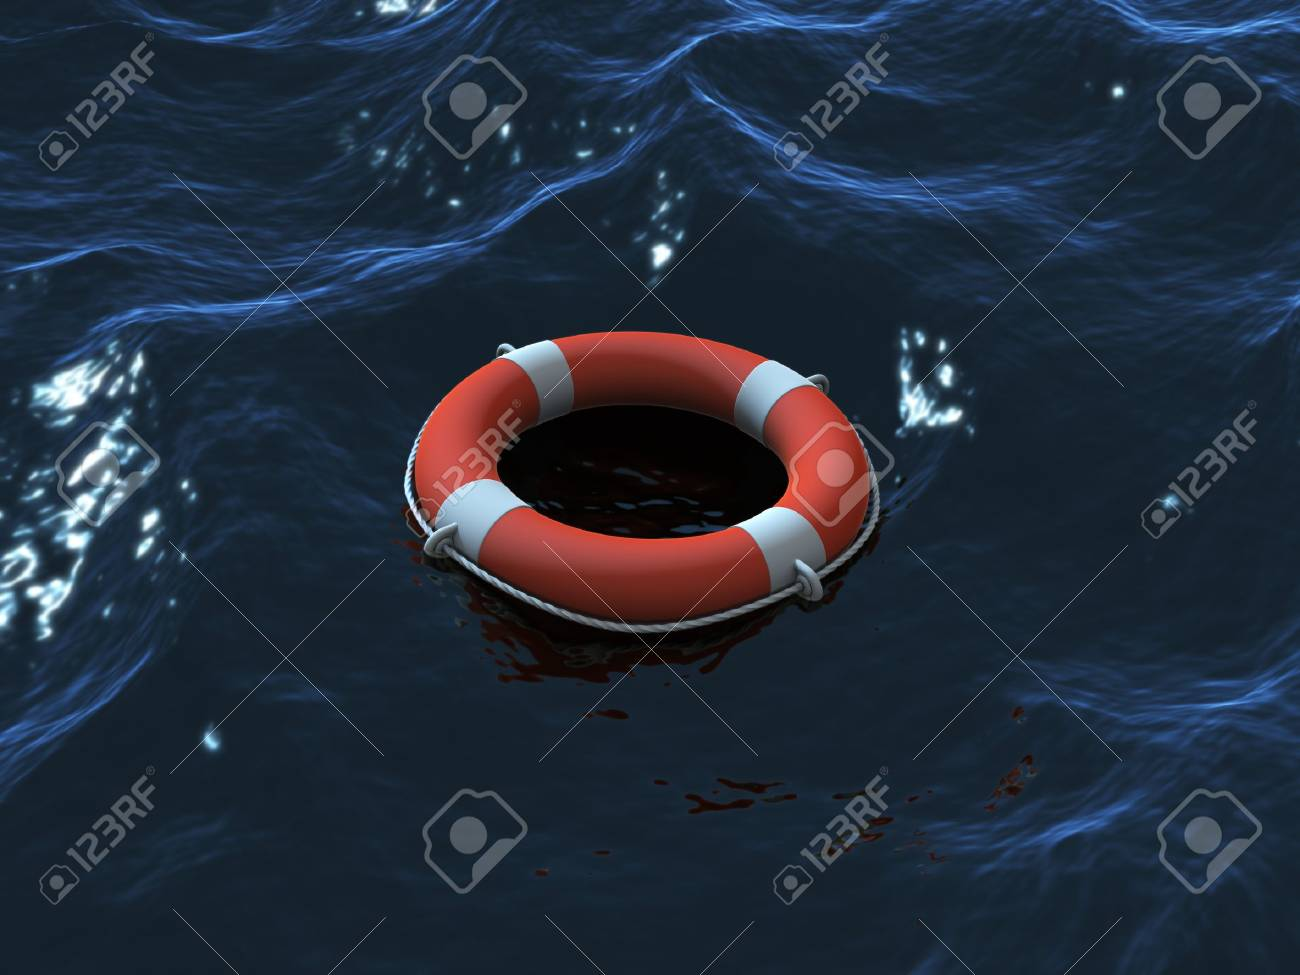 Render of lifebuoy swimming in waves Stock Photo - 9980118